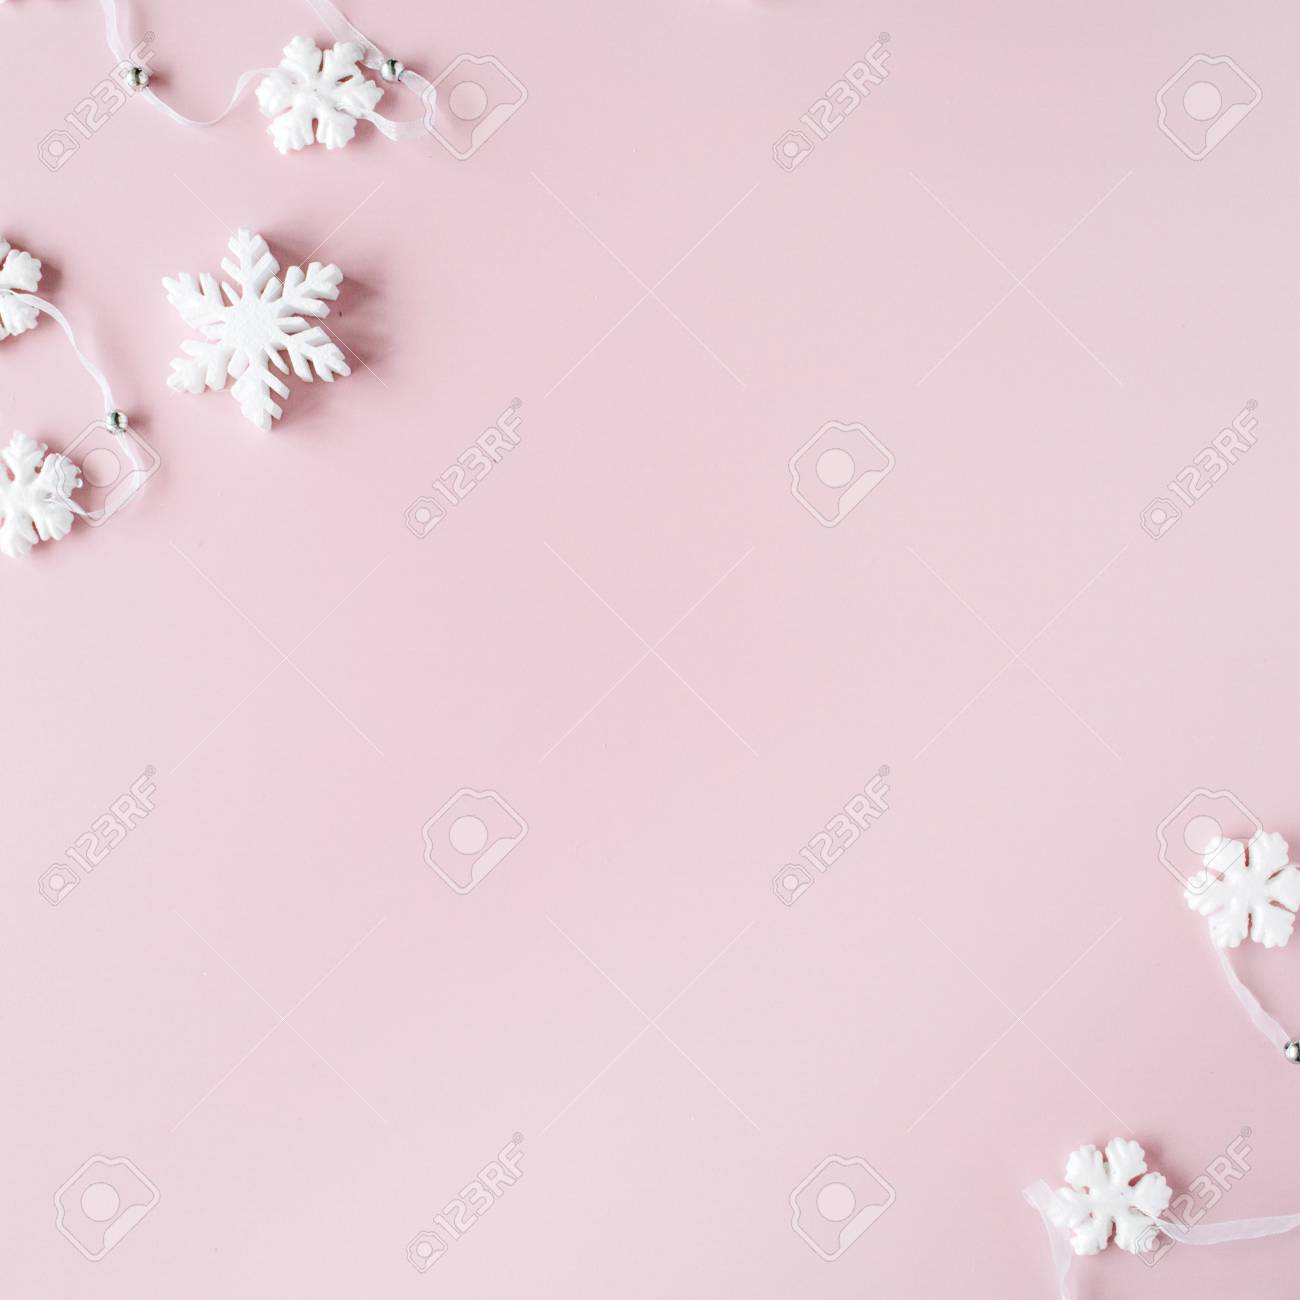 67718556 white christmas snowflakes decoration on pink background christmas wallpaper flat lay top view